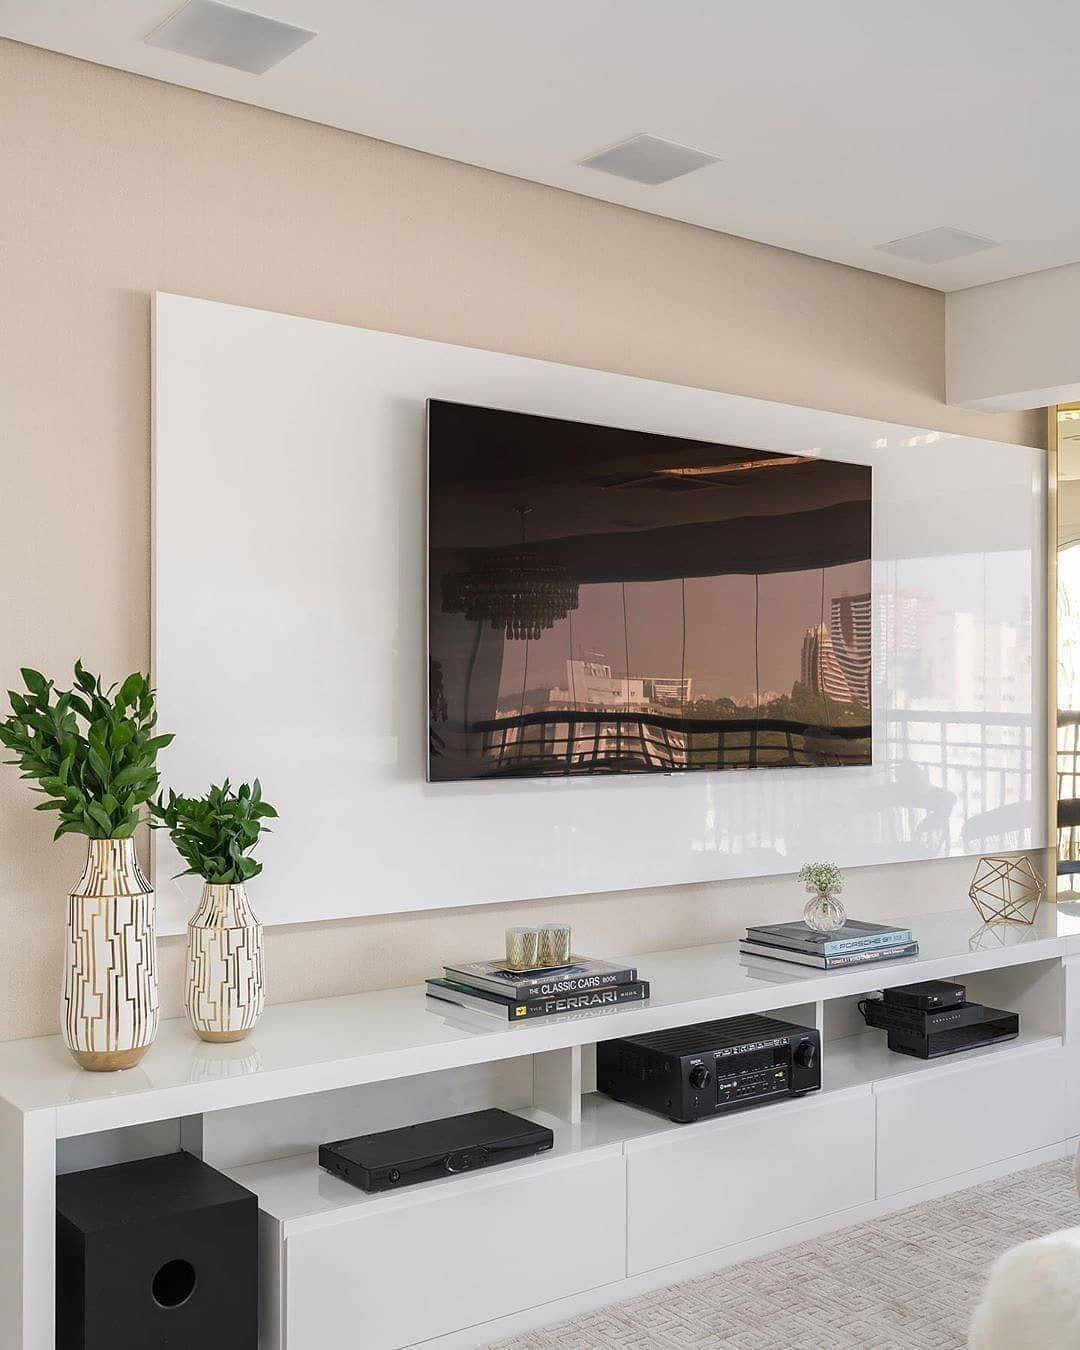 Jonas Manfrin On Instagram White And Clean Home Tv That Combined Perfectly Fou Wohnzimmer Ideen Wohnung Wohnung Wohnzimmer Wg Zimmer Einrichten Ideen